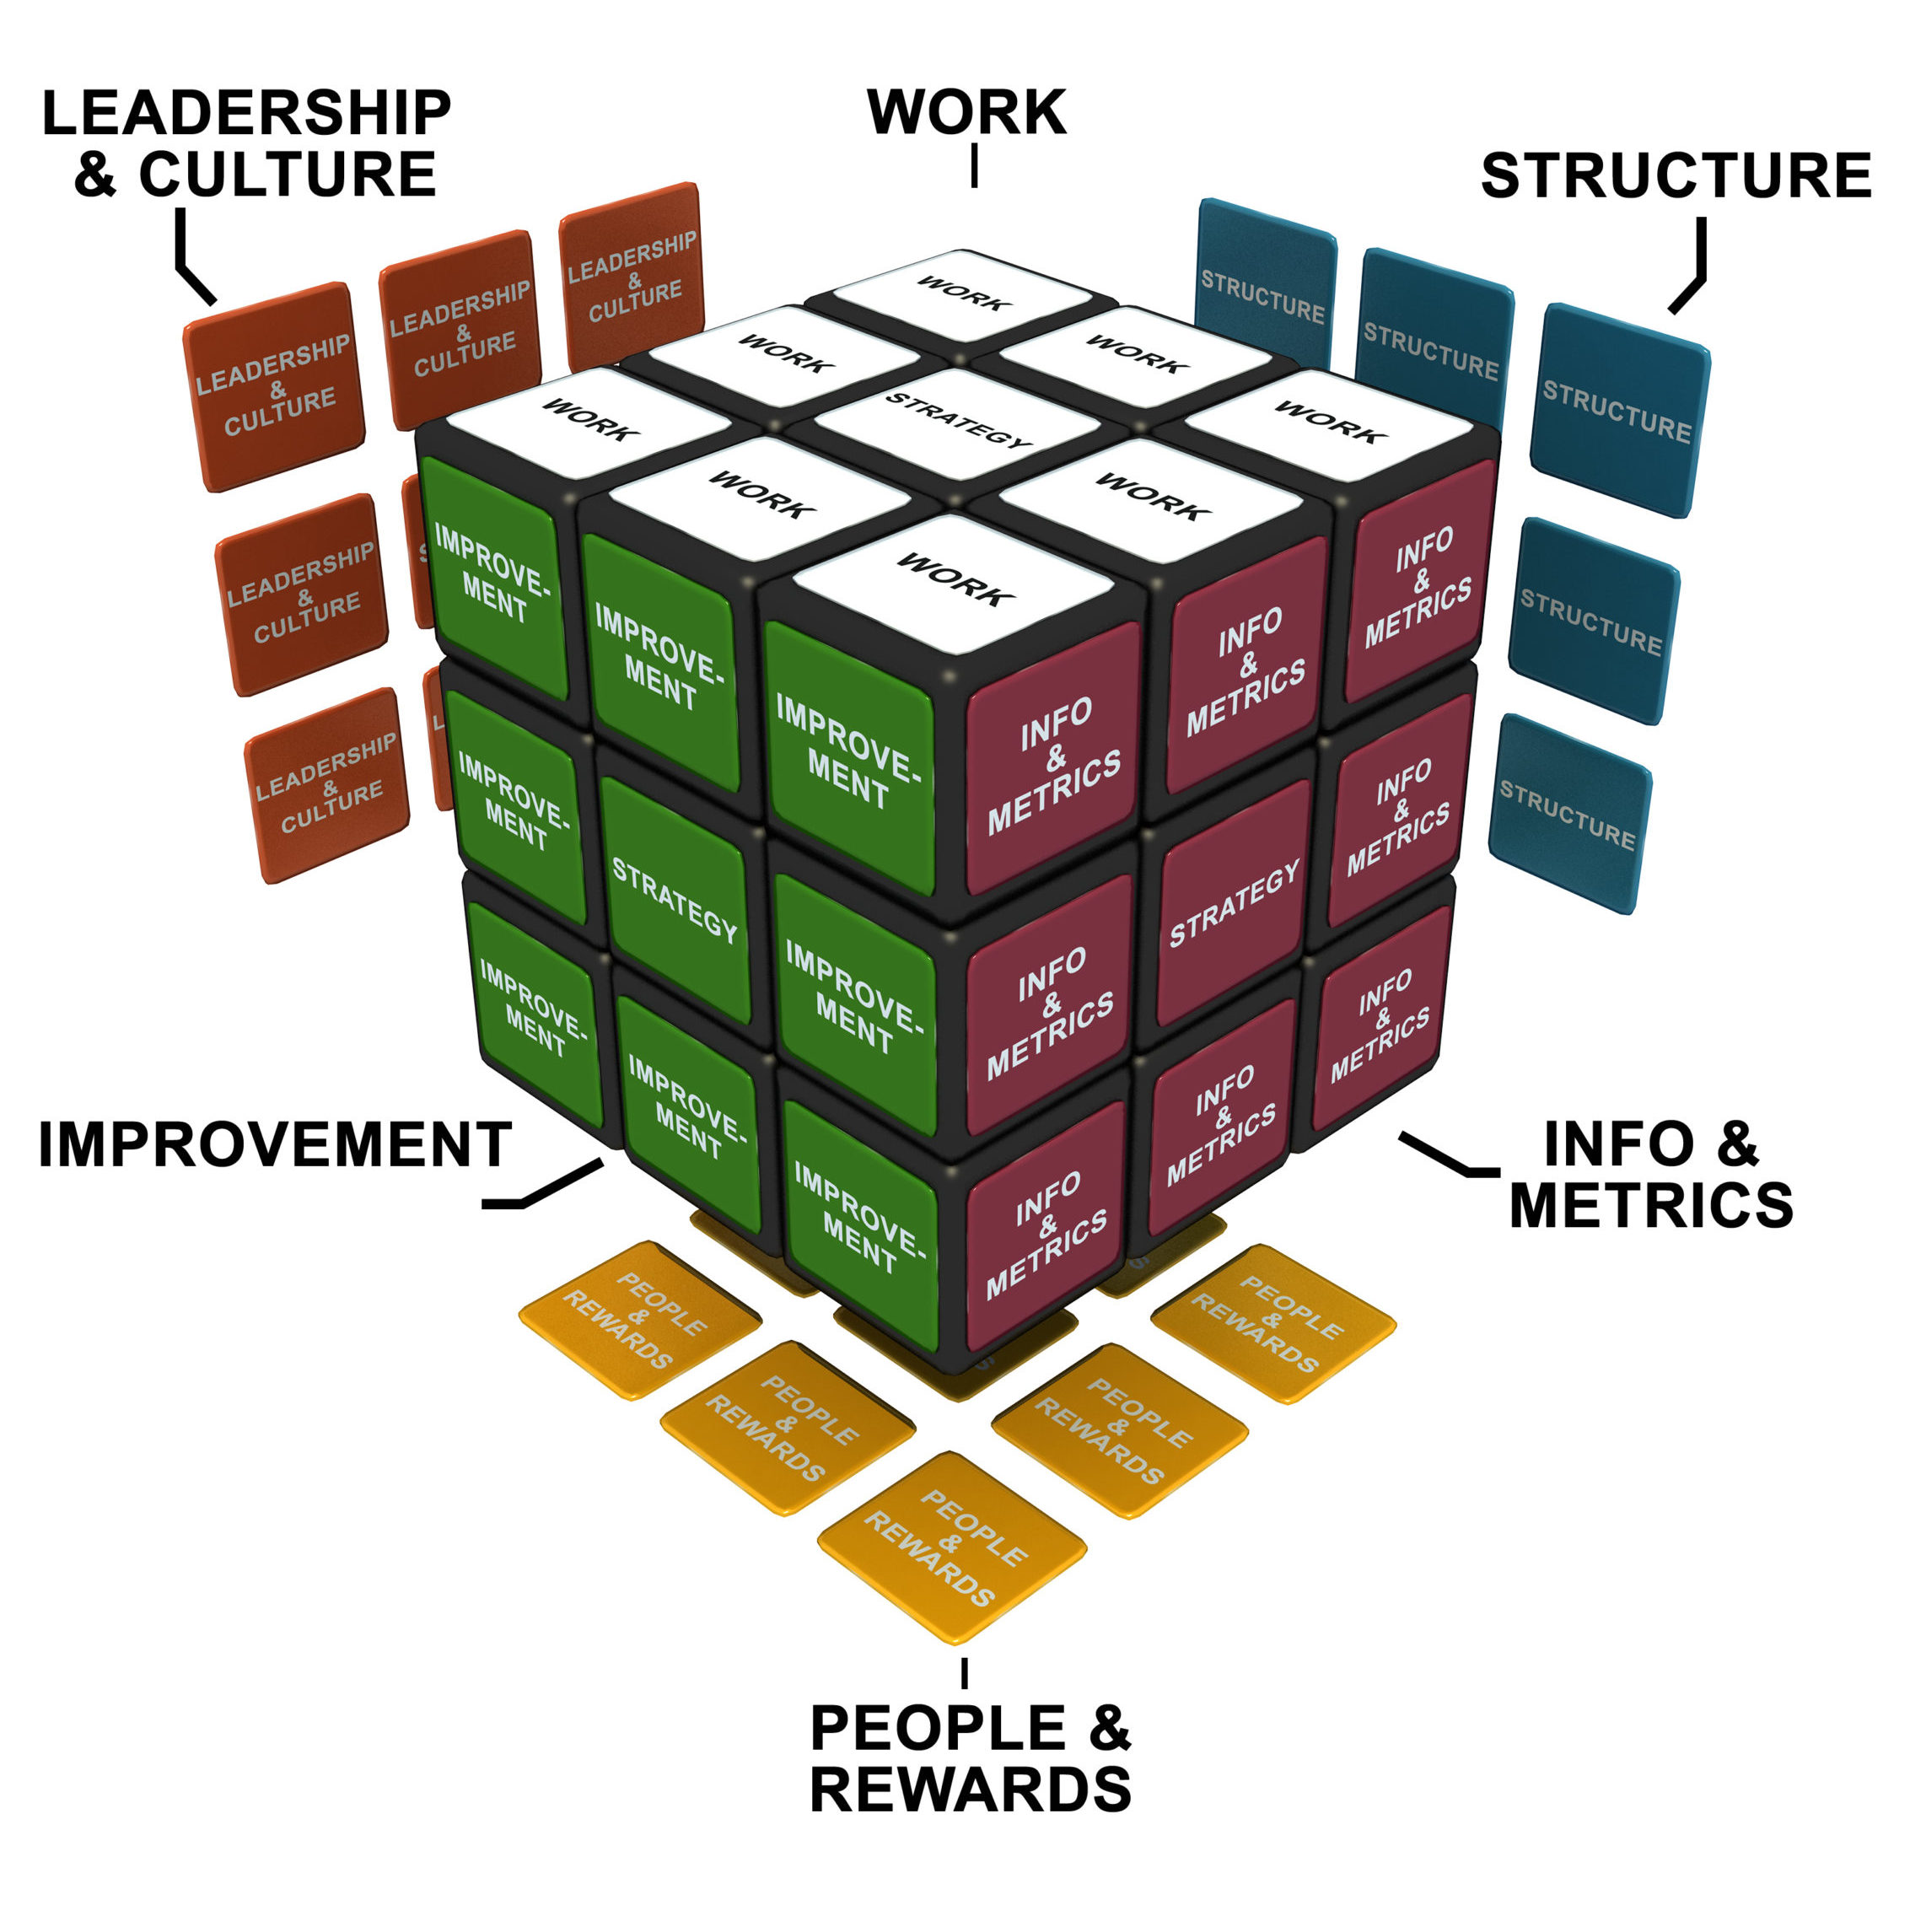 For successful organization design, ensure all sides of the cube are aligned